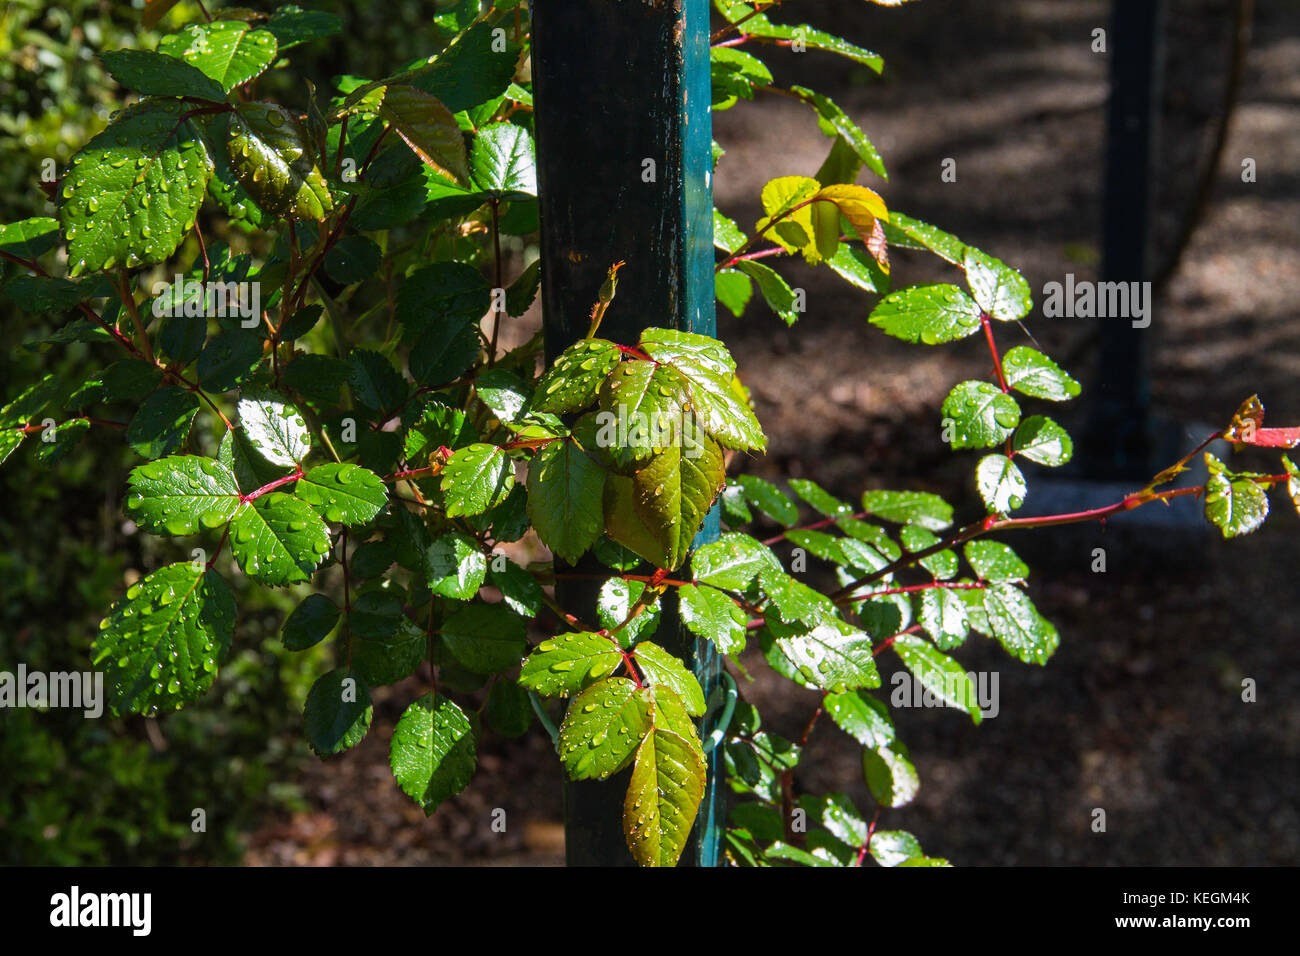 raindrops on the leaves of the rose-bush in spring - Stock Image